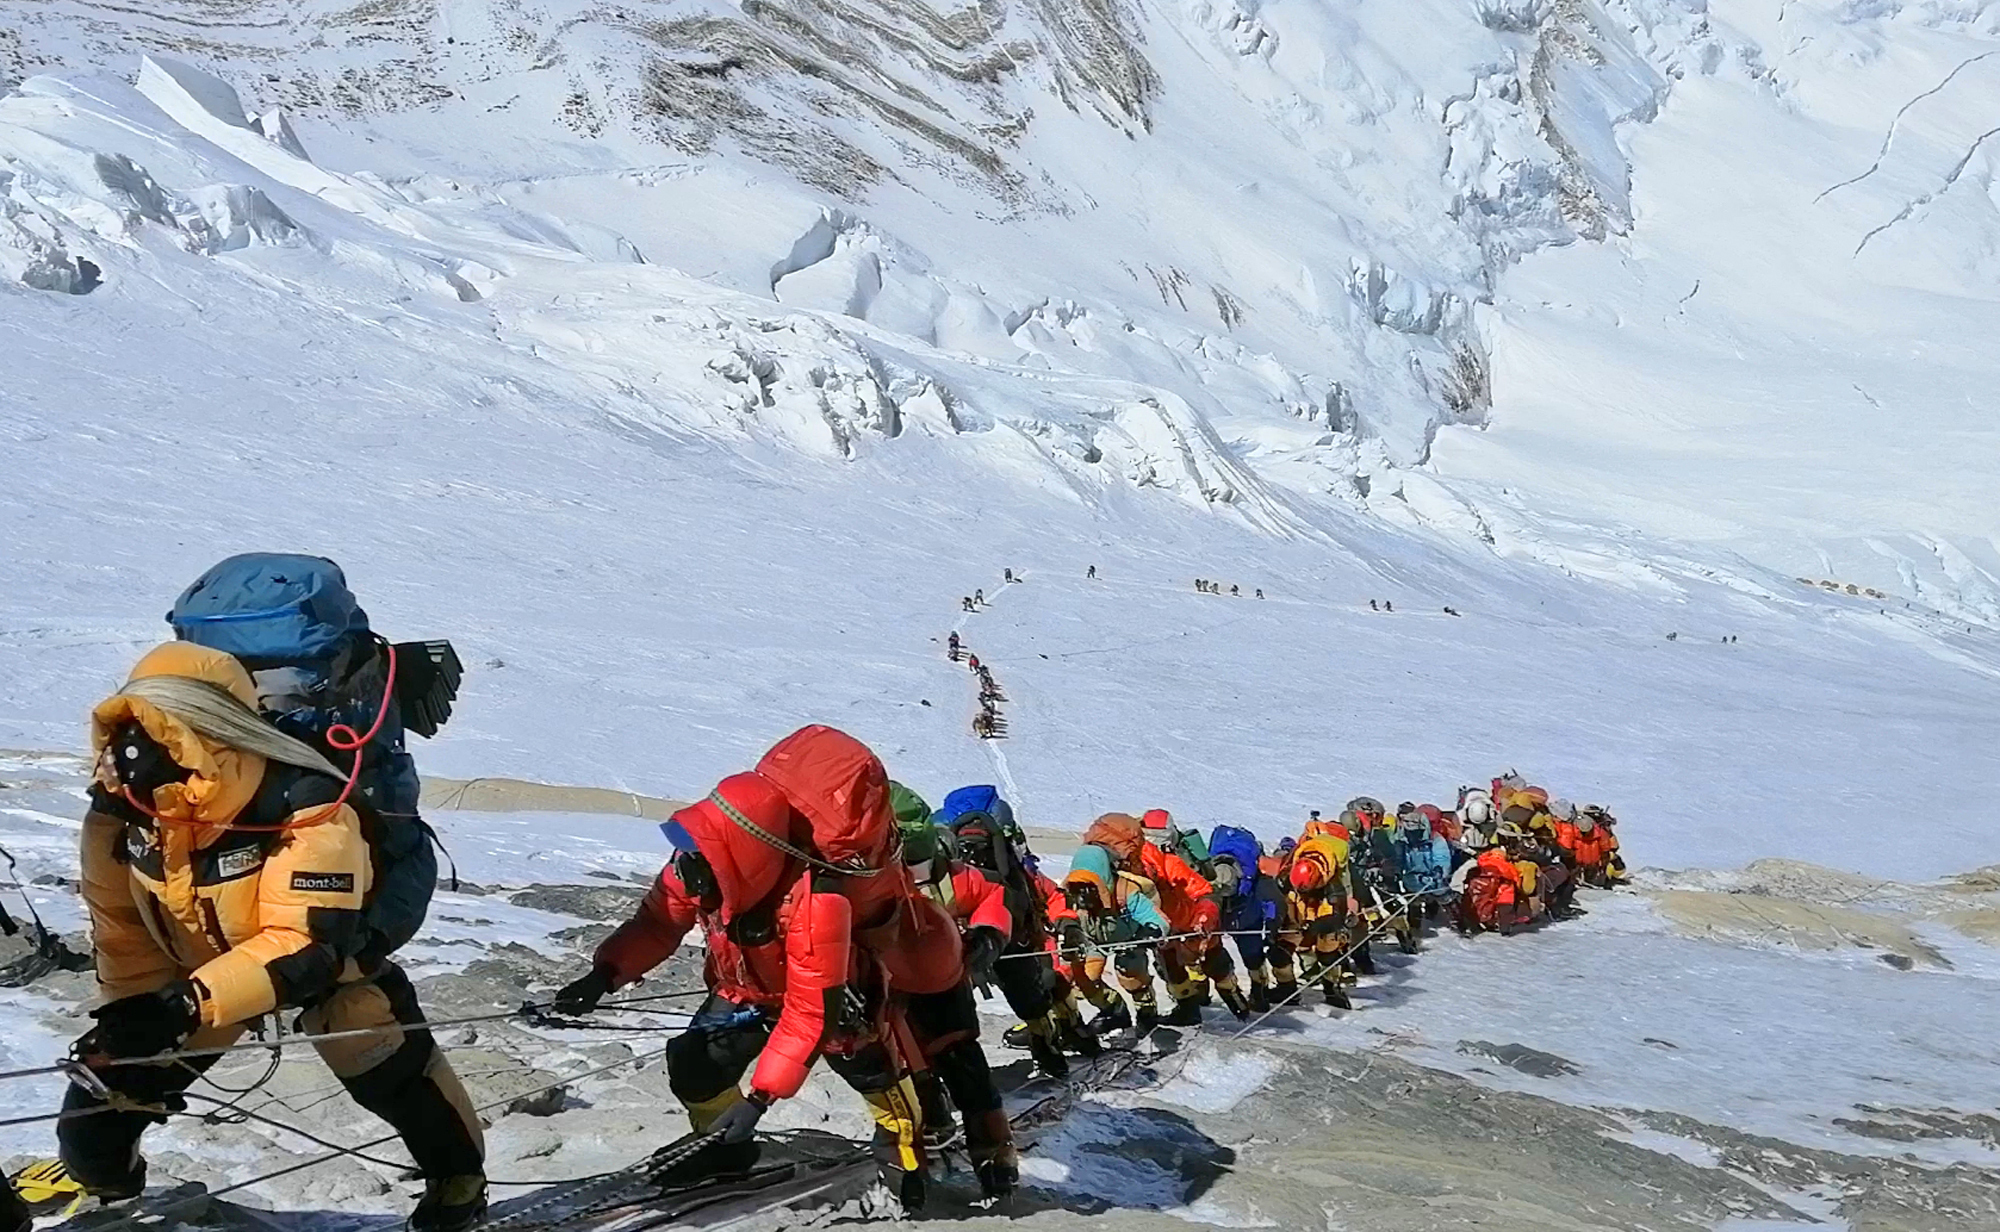 Mount Everest Closed To Climbers Amid Coronavirus Outbreak